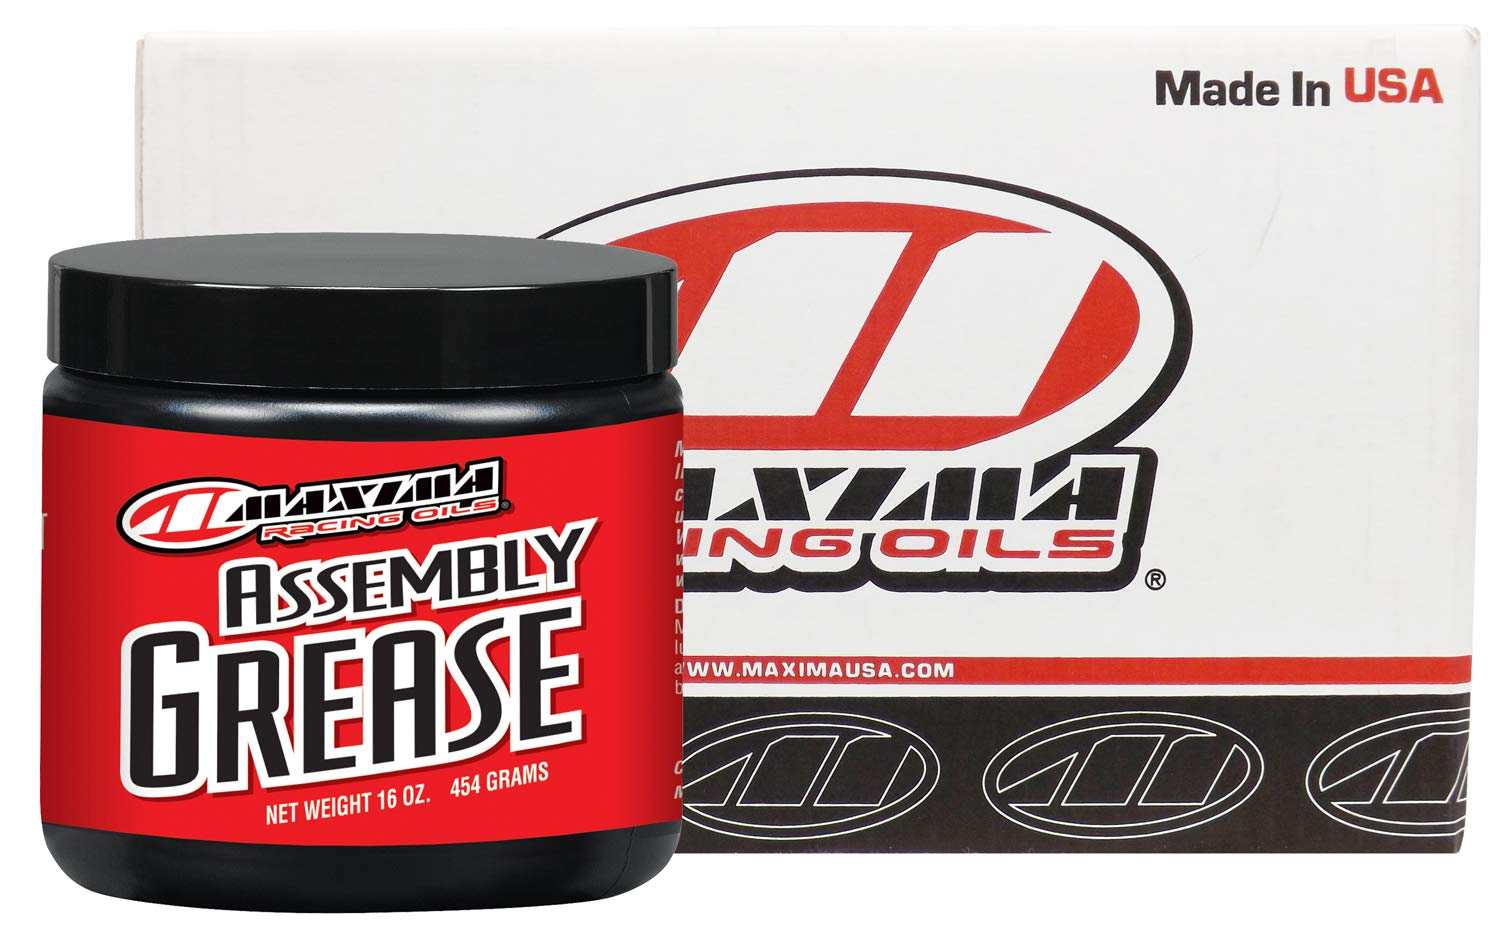 Maxima Racing USA 69-02916-12PK Assembly Grease, 192. Fluid_Ounces, 12 Pack by Maxima Racing USA